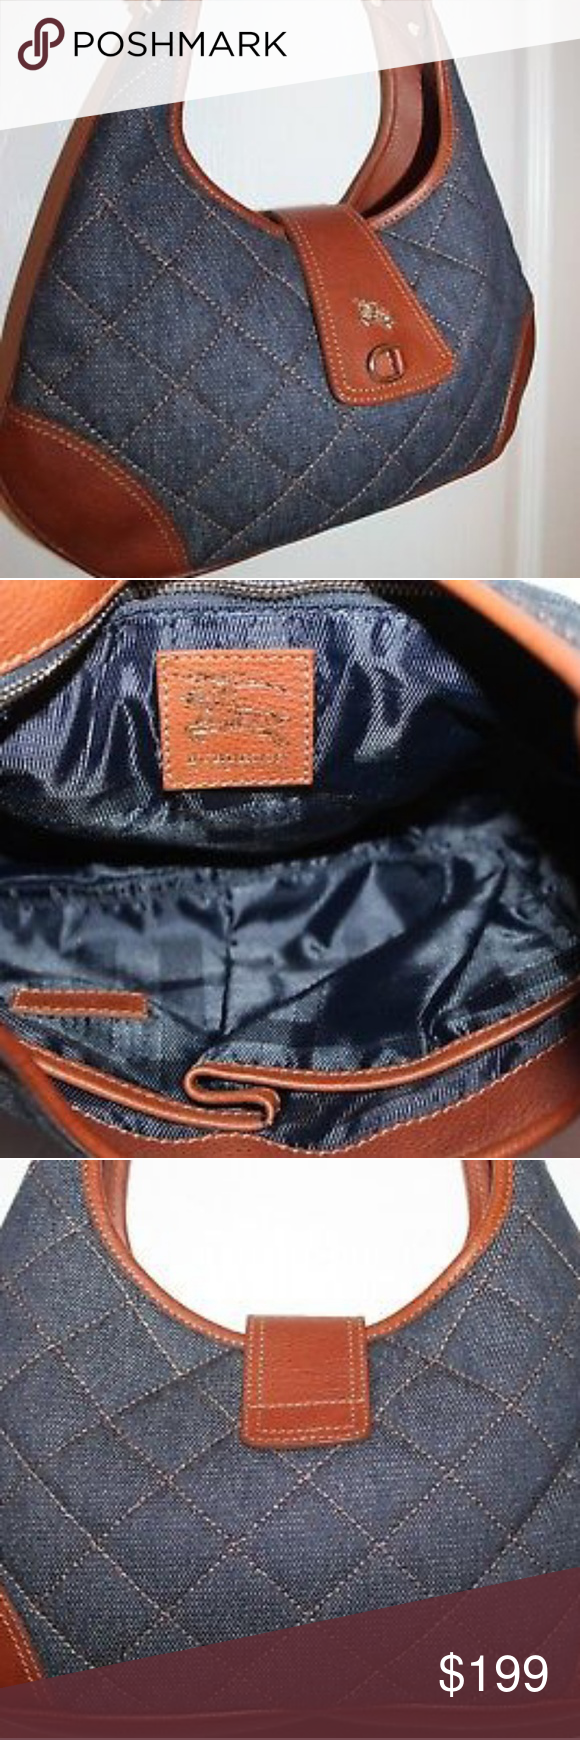 90afcf3e2170 Burberry Small Quilted Denim Bag Burberry Quilted Denim Bag Brown Leather  Trim Flap Snap Closure Interrior Zipper Pocket and two open pockets great  ...